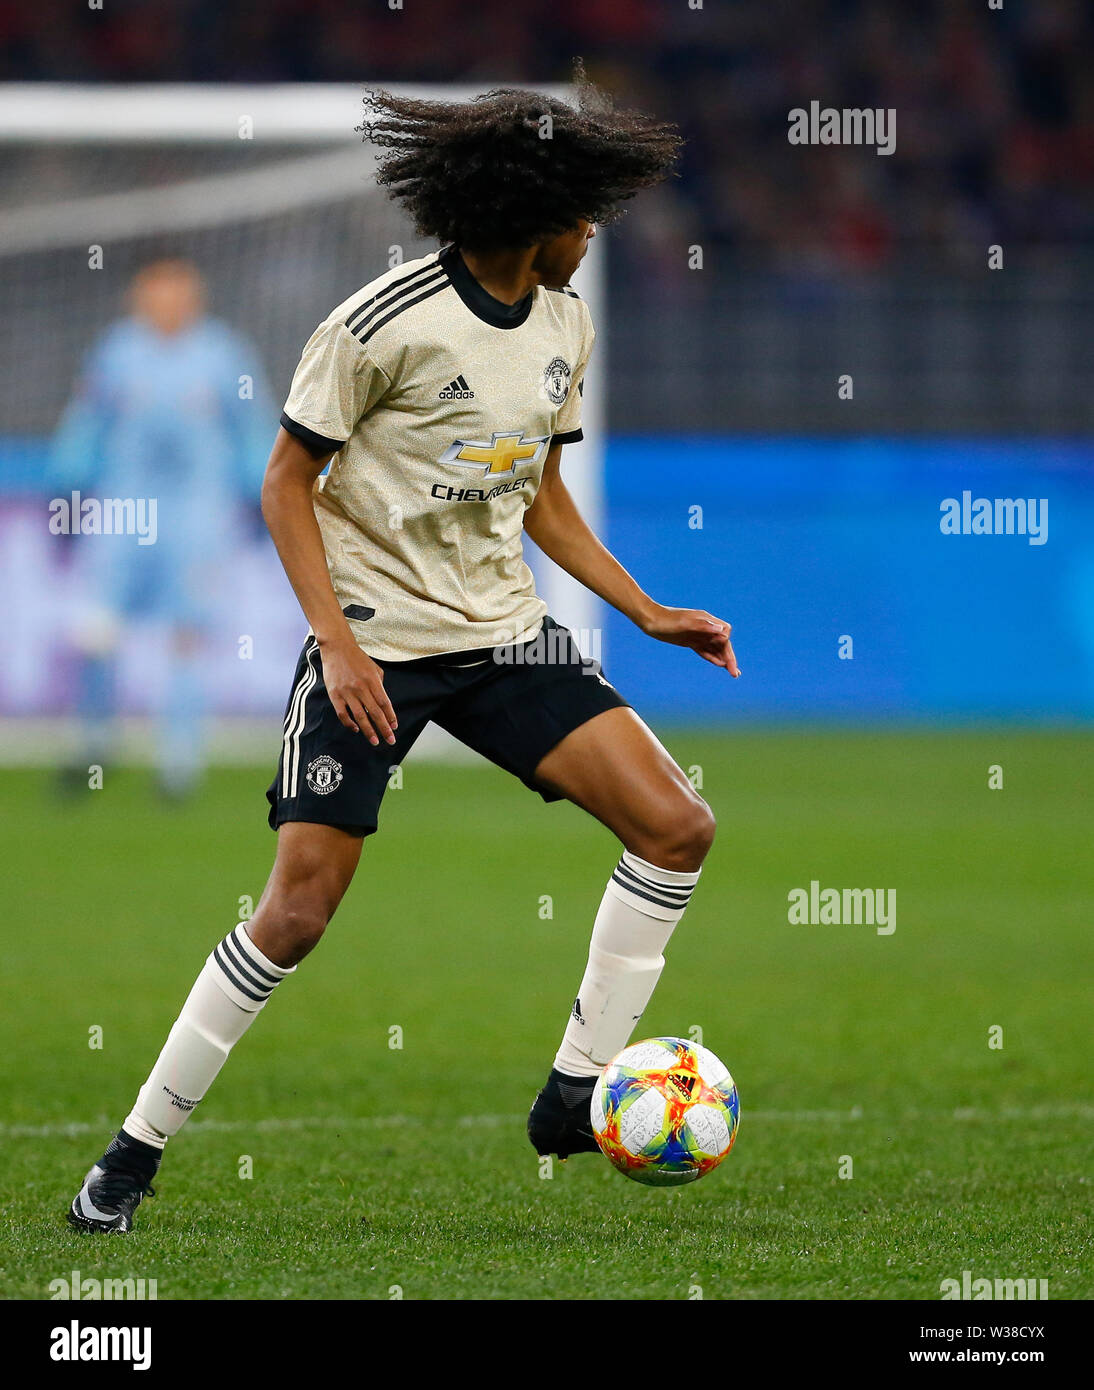 Optus Stadium, Perth, Western Australia. 13th July, 2019. Pre-season friendly football, Perth Glory versus Manchester United; Tahith Chong of Manchester United Credit: Action Plus Sports/Alamy Live News Stock Photo